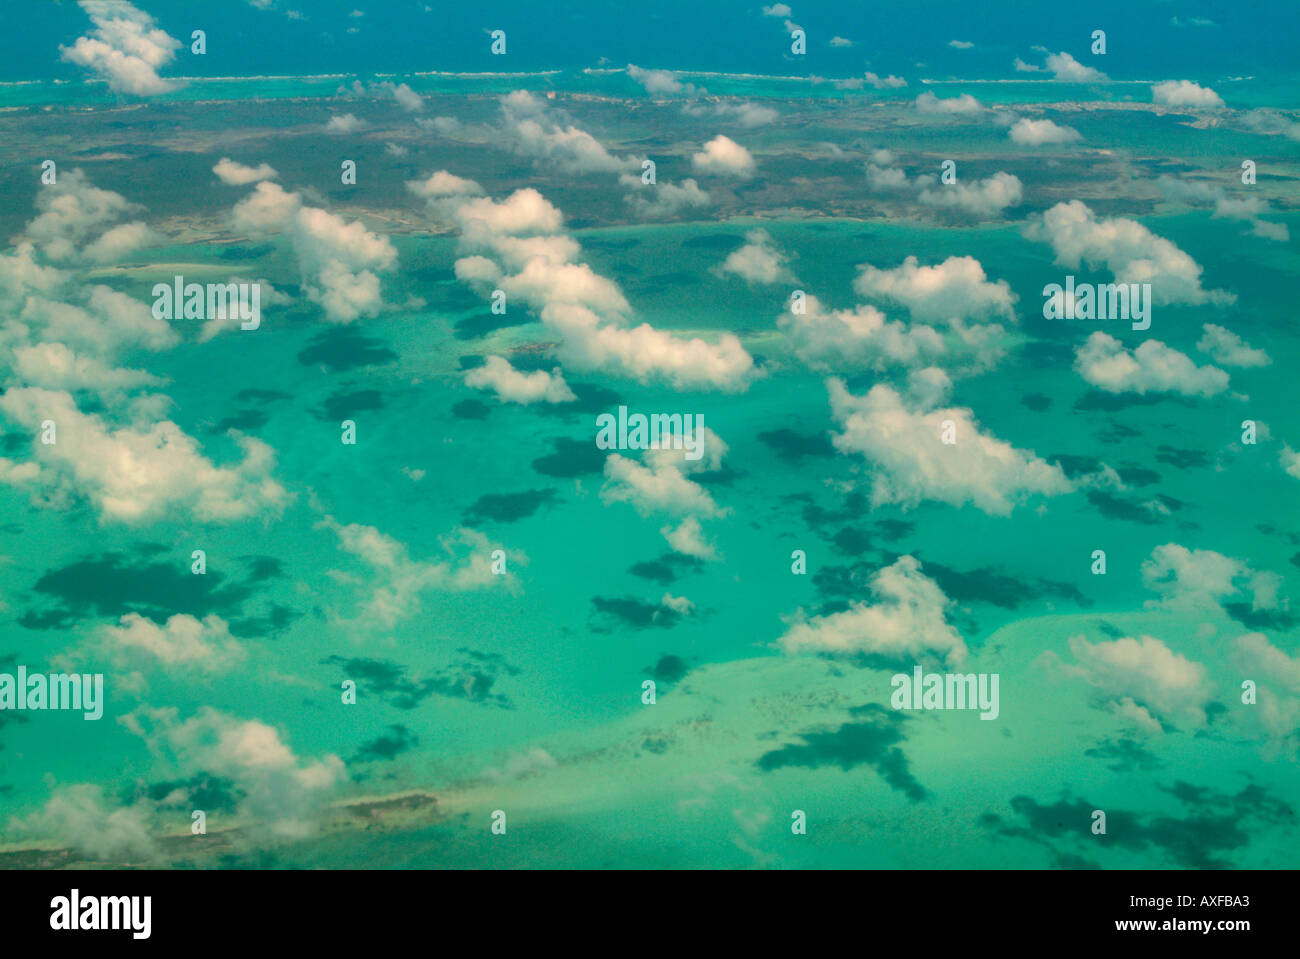 A birds eye view of a caribbean island and fringing reefs in this aerial shot. - Stock Image